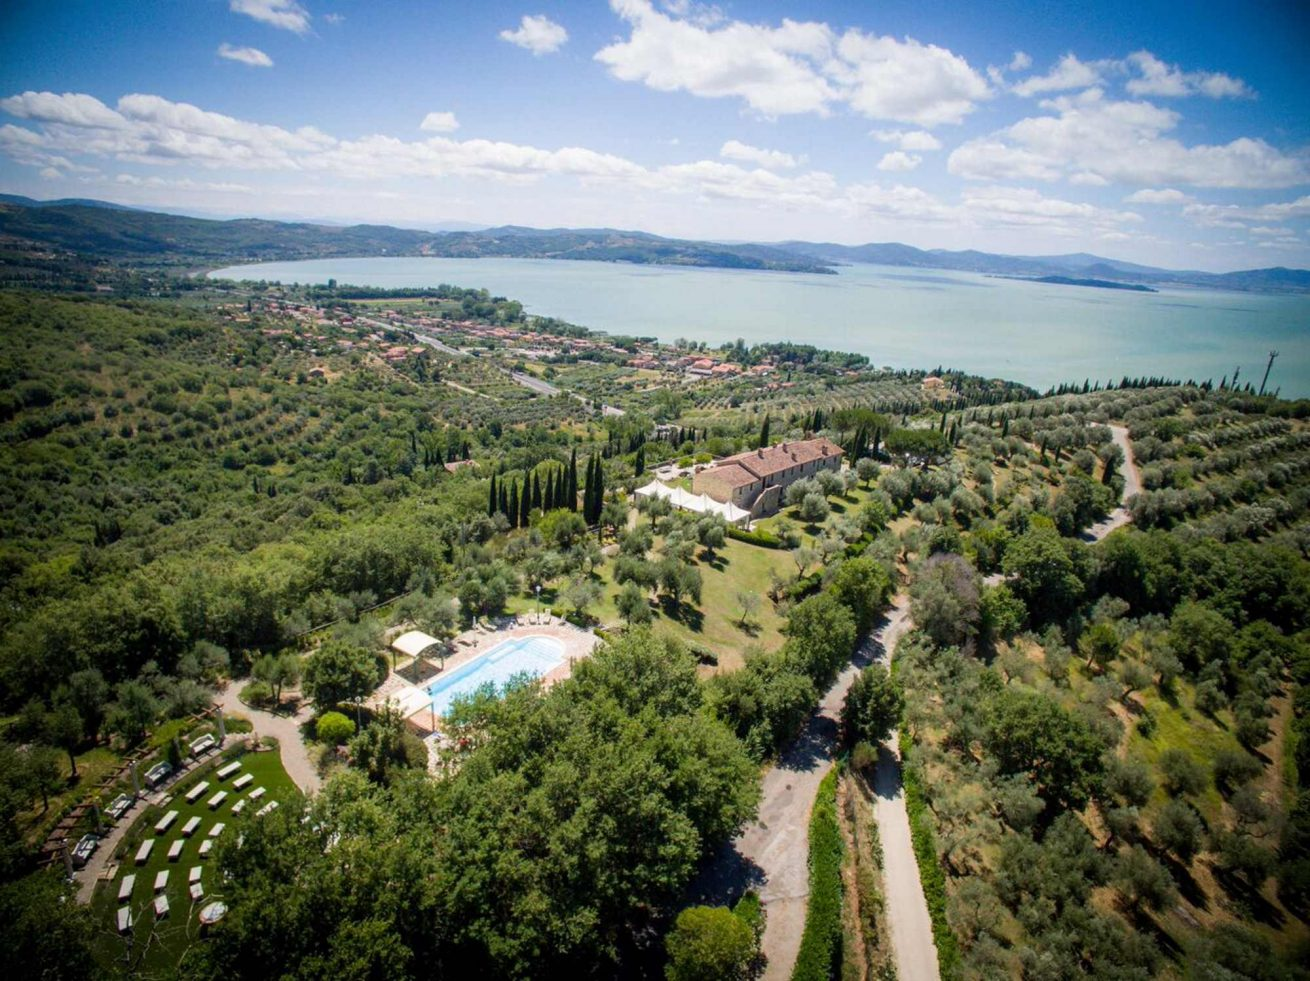 Amazing View of the pool area at Villa San Crispolto